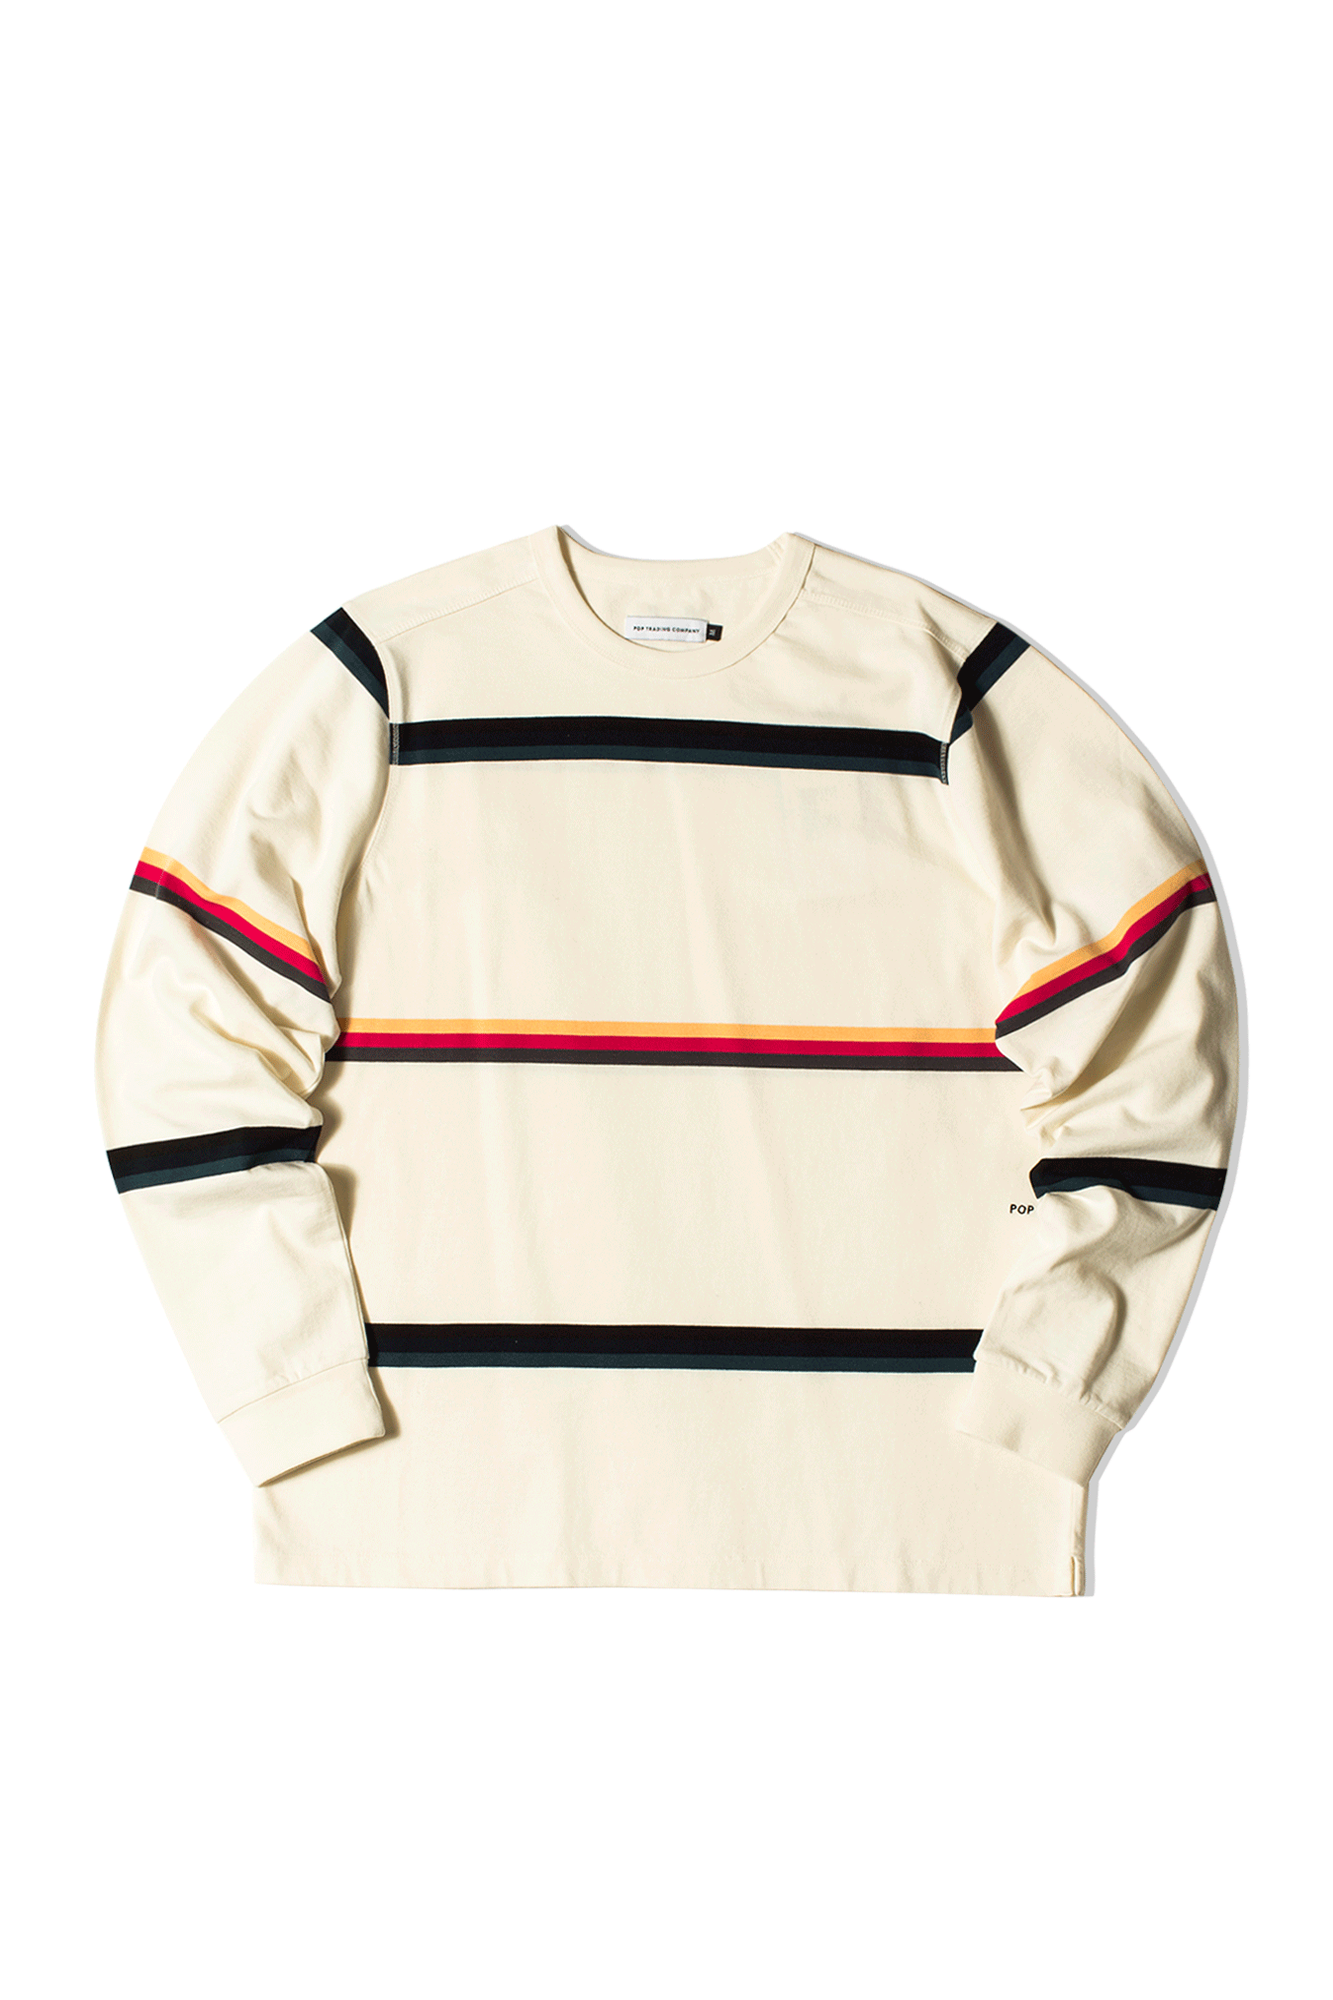 Pop Trading Company Long sleeve T-Shirts Striped Longsleeve T-Shirt White SS2102-005#000#OFFWHT#M - One Block Down